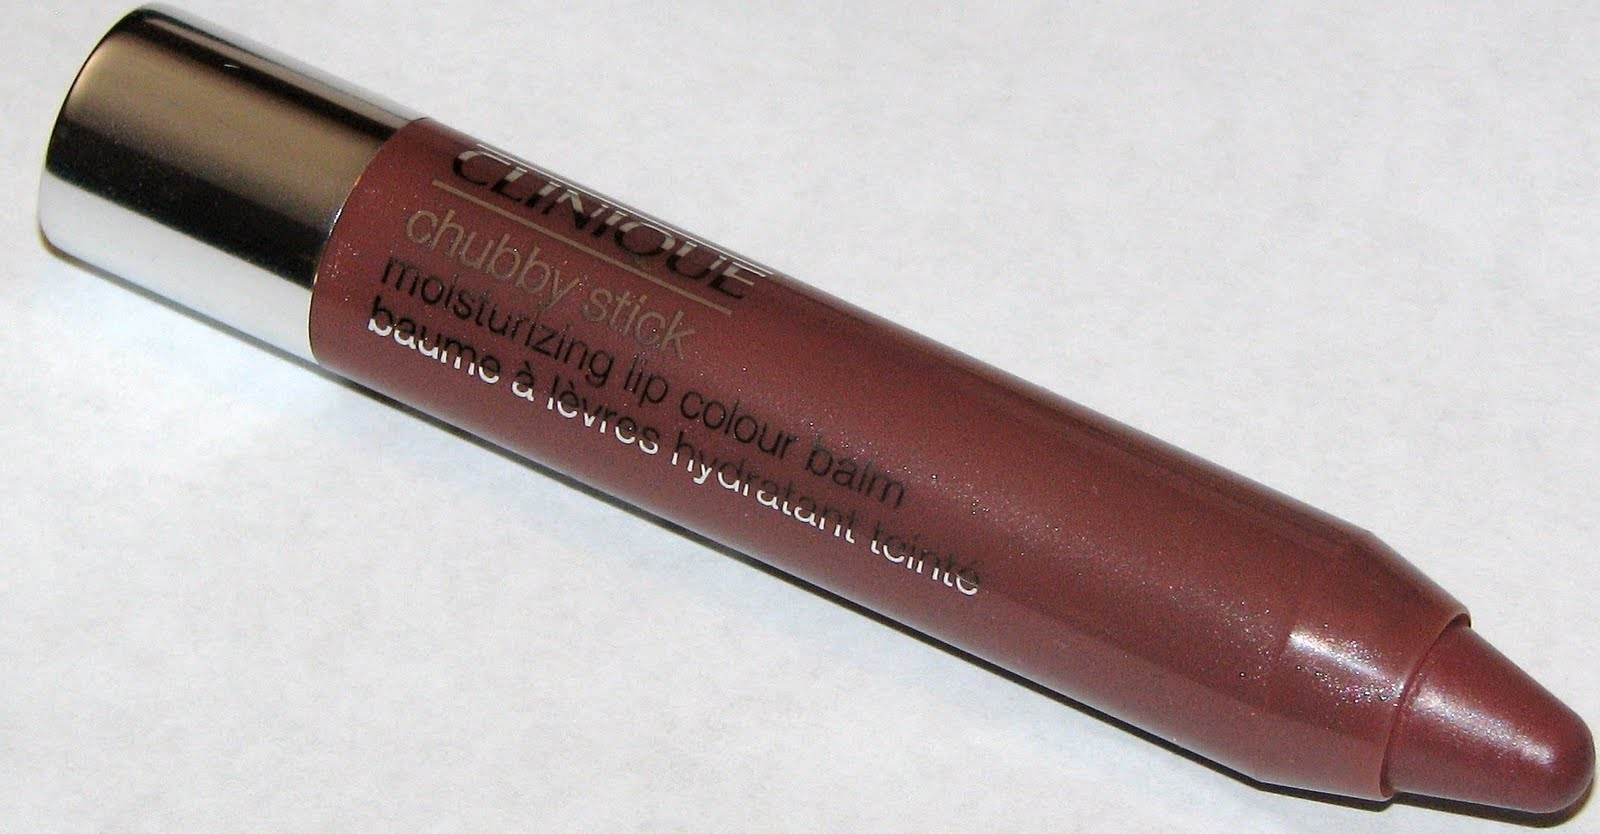 Vanille brownie stick clinique chubby